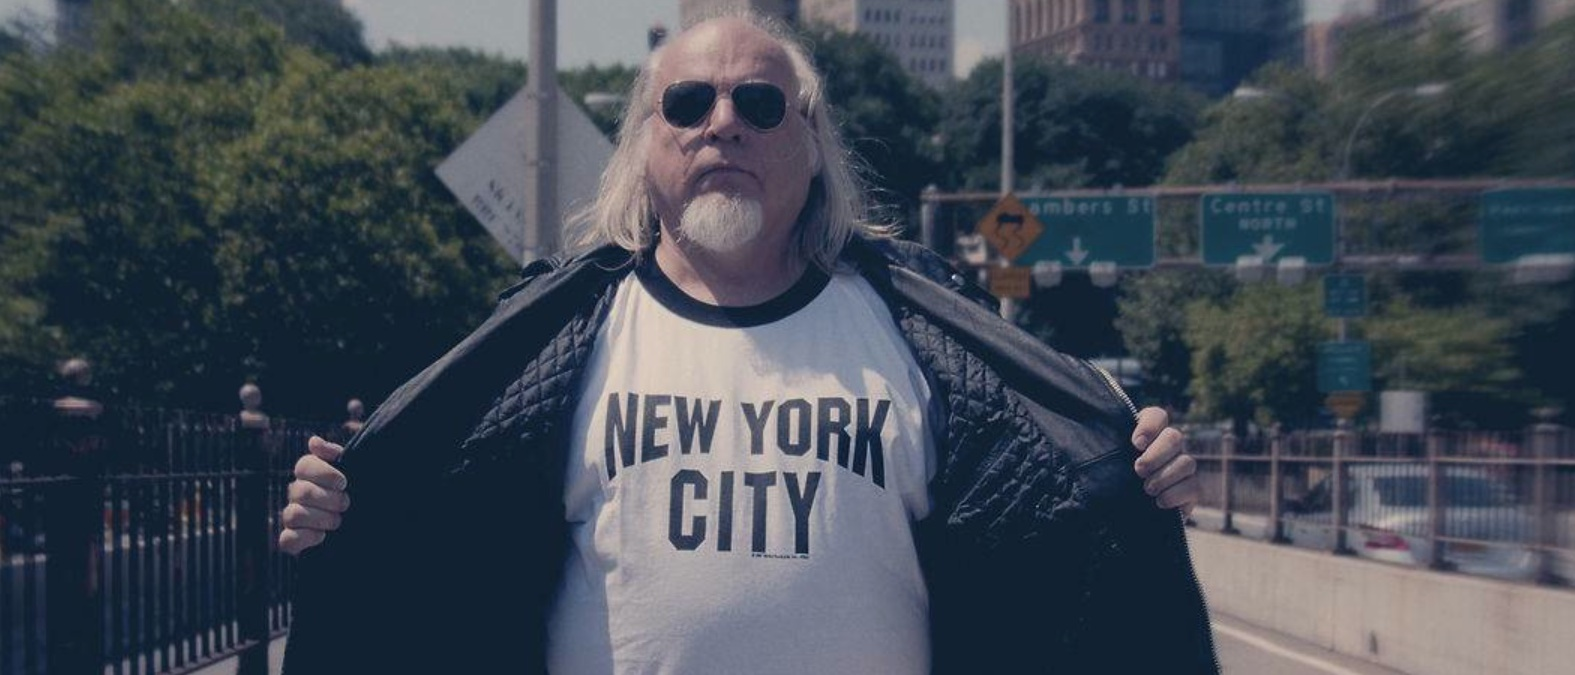 """New York City"": a dazzling music video featuring Joey Ramone & 100+ other performers"